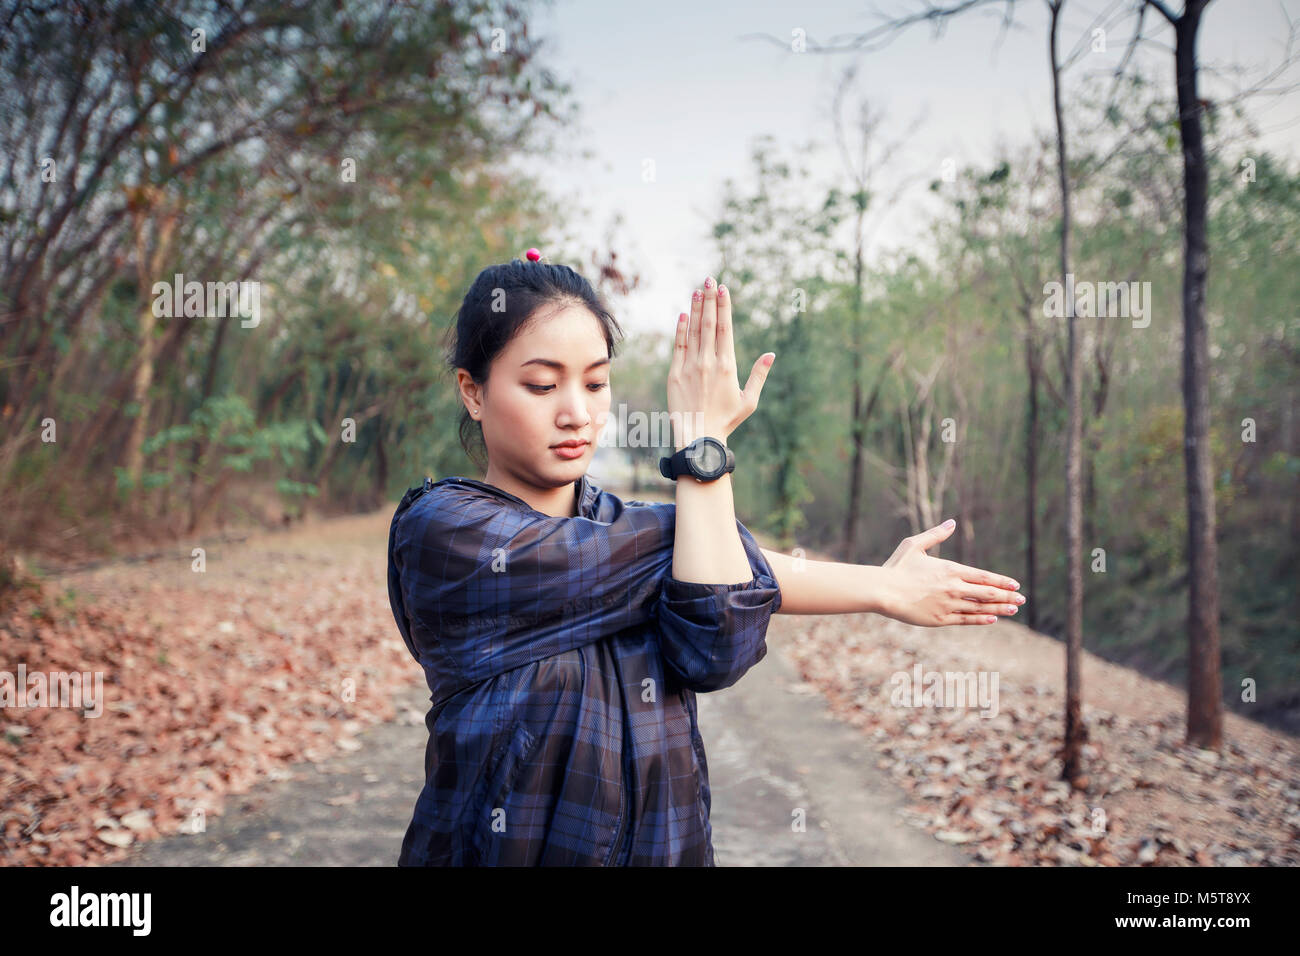 Athletic woman asia warming up and Young female athlete exercising and stretching in a park before Runner outdoors, Stock Photo